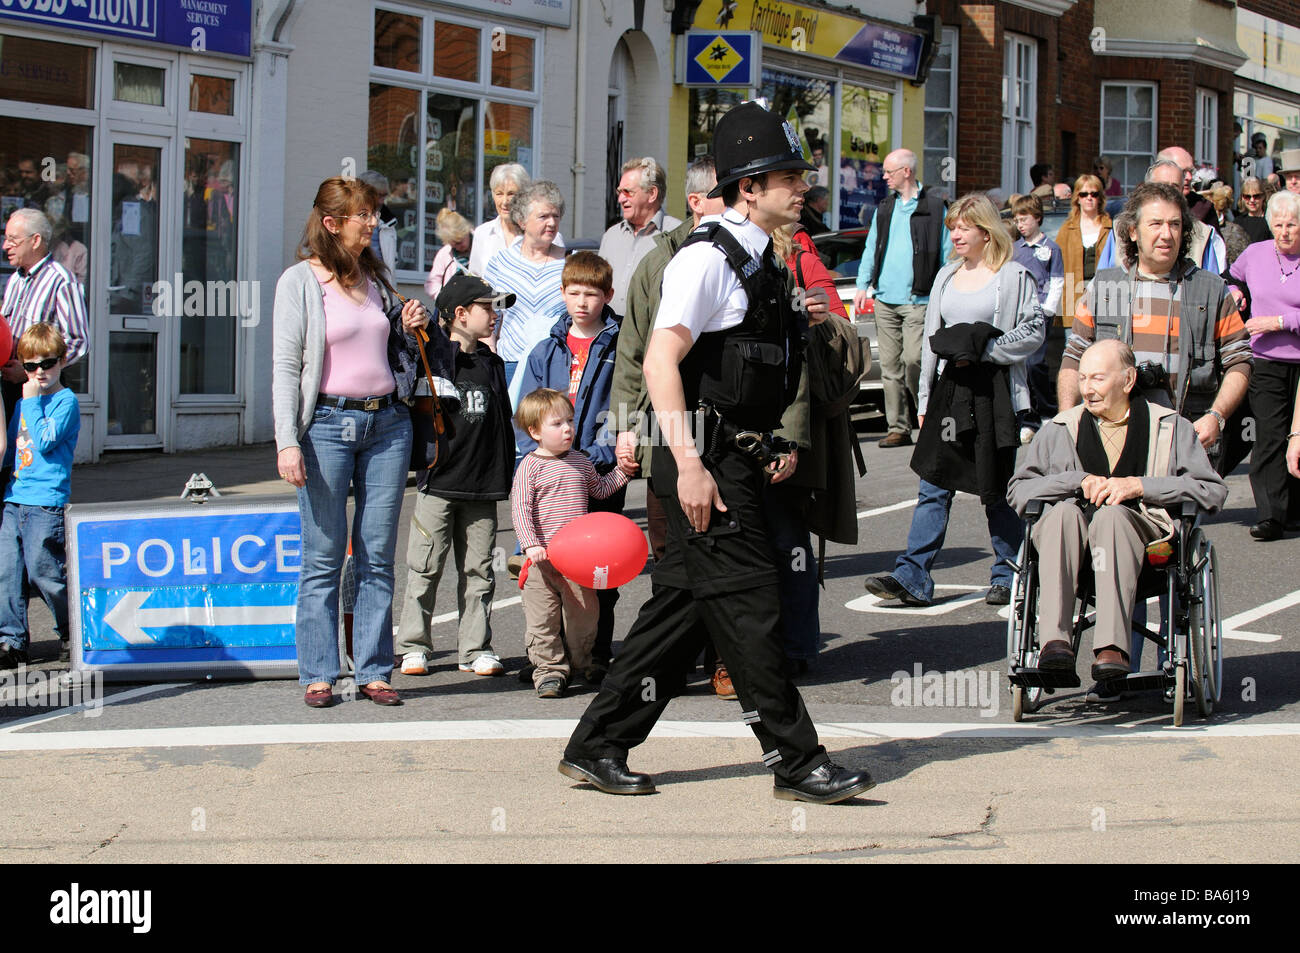 Policeman on crowd and traffic control duty in Petersfield town centre Hampshire England UK Stock Photo